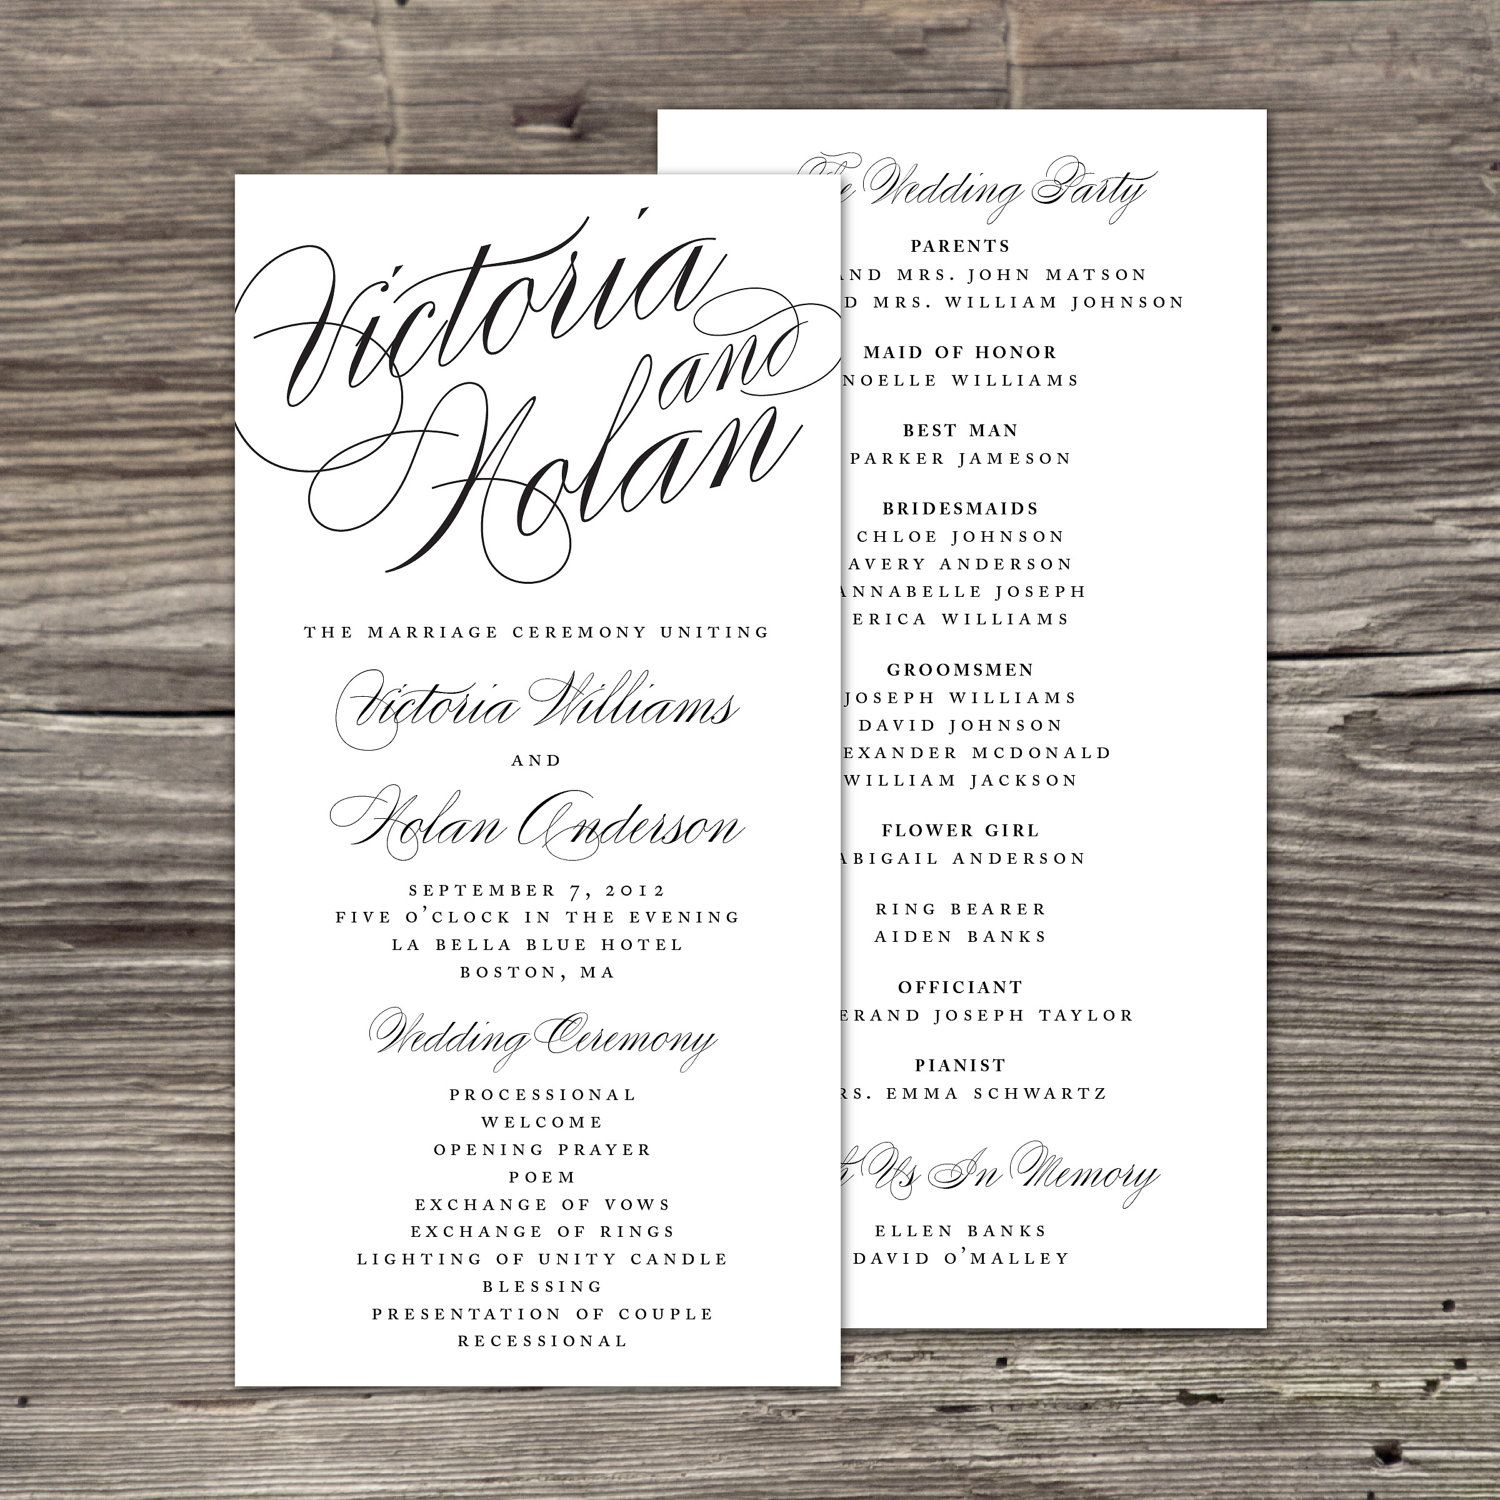 Calligraphy Wedding Program | Wedding programs, Calligraphy and ...